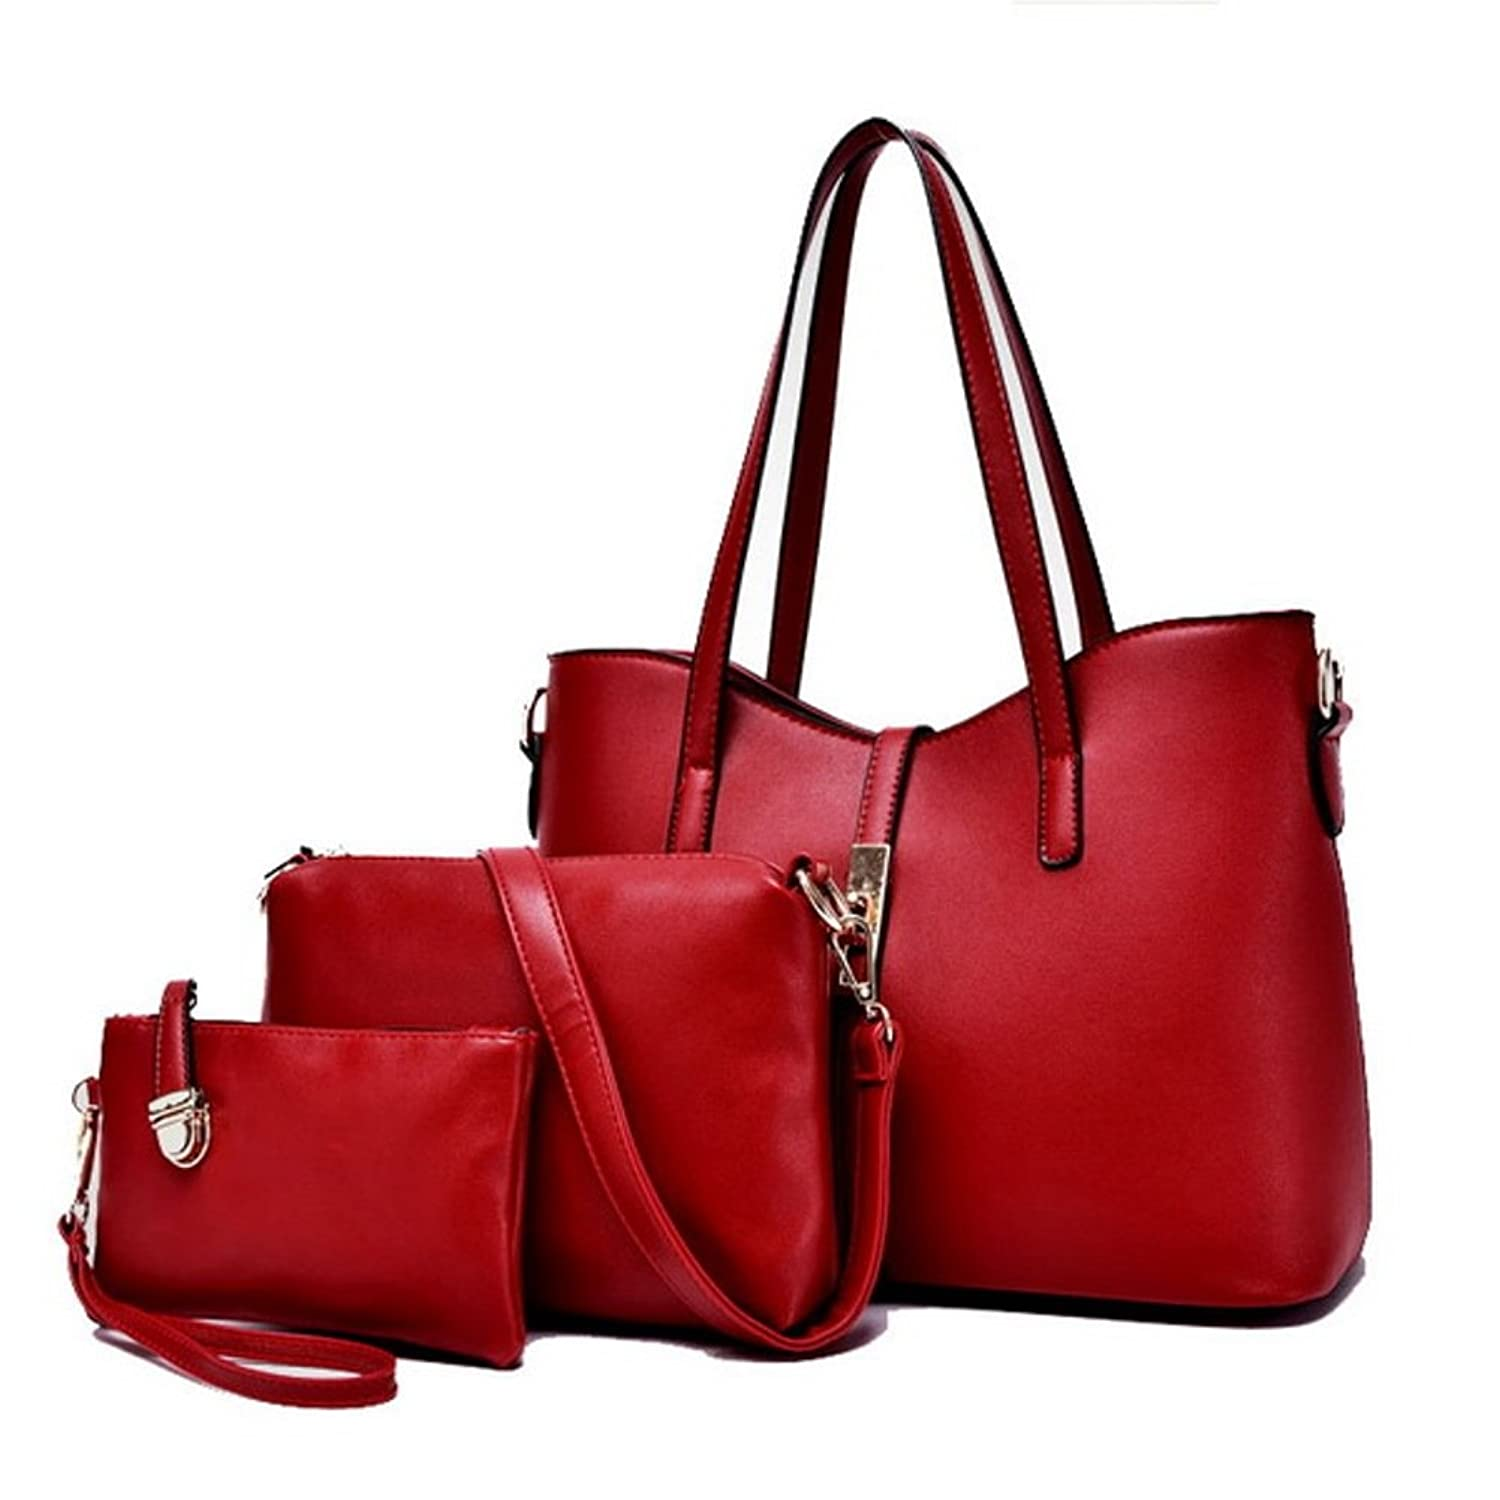 Meet Color Stylish Women Handbag Shoulder Bags Tote Purse Leather Messenger Bag Set